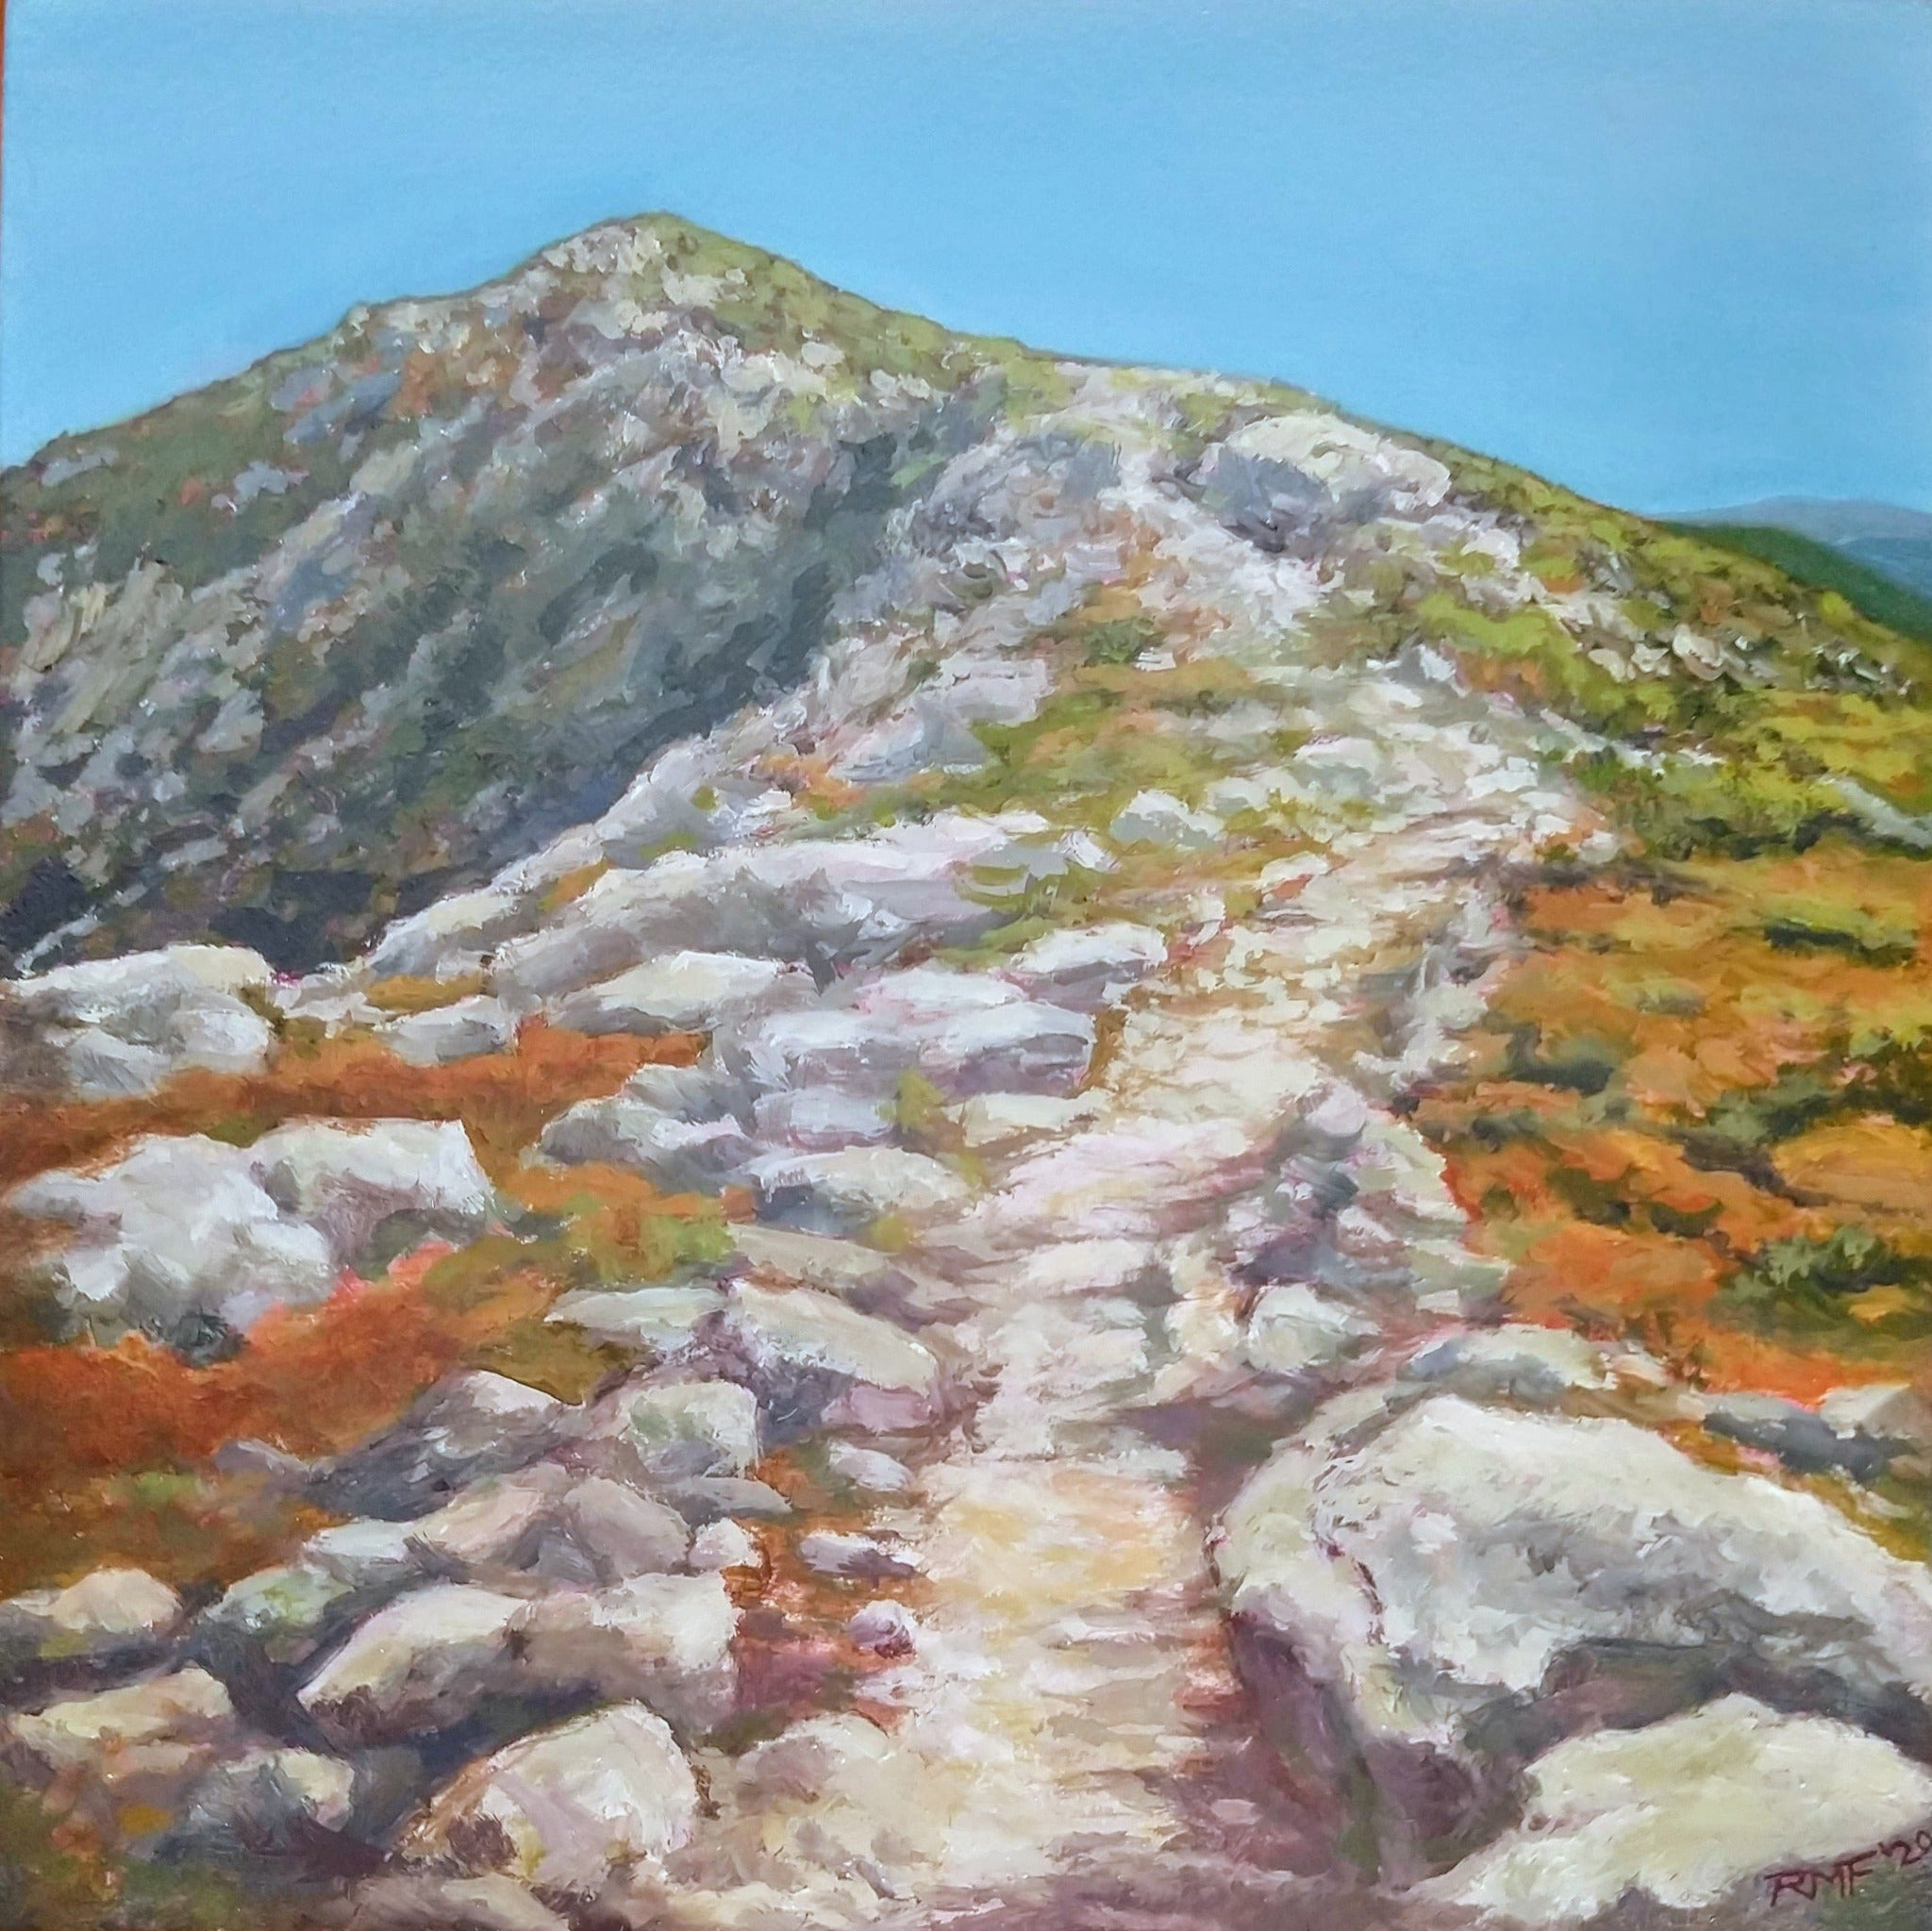 """Franconia Ridge Trail"" is a 10 by 10 inch oil on panel painting by Rebecca M. Fullerton, depicting a winding trail leading along the Franconia Ridge, with Mount Lafayette in the background. From my series of White Mountain National Forest landscapes here in New Hampshire."